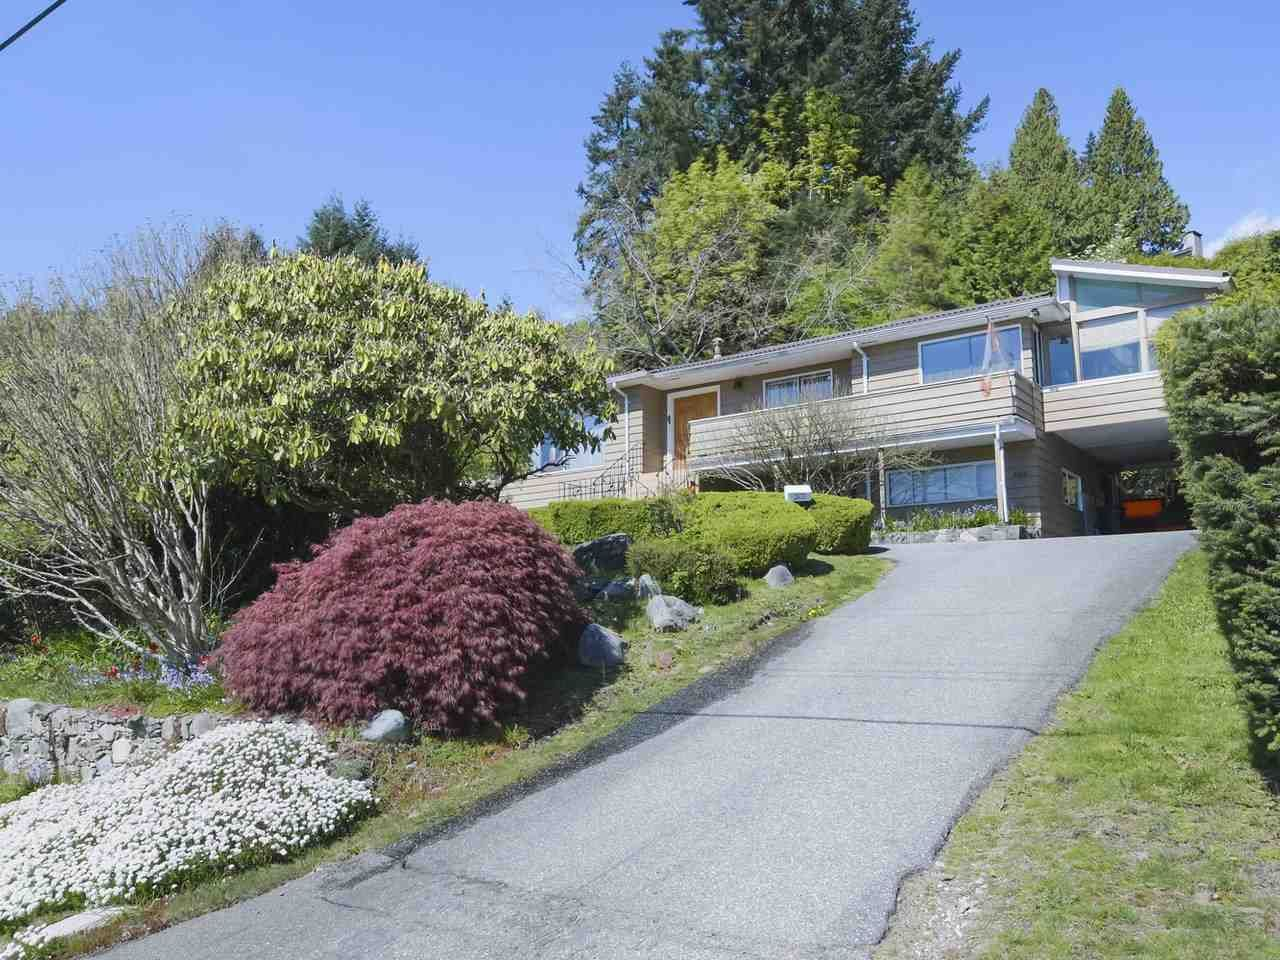 Main Photo: 2675 SKILIFT Place in West Vancouver: Chelsea Park House for sale : MLS®# R2449506